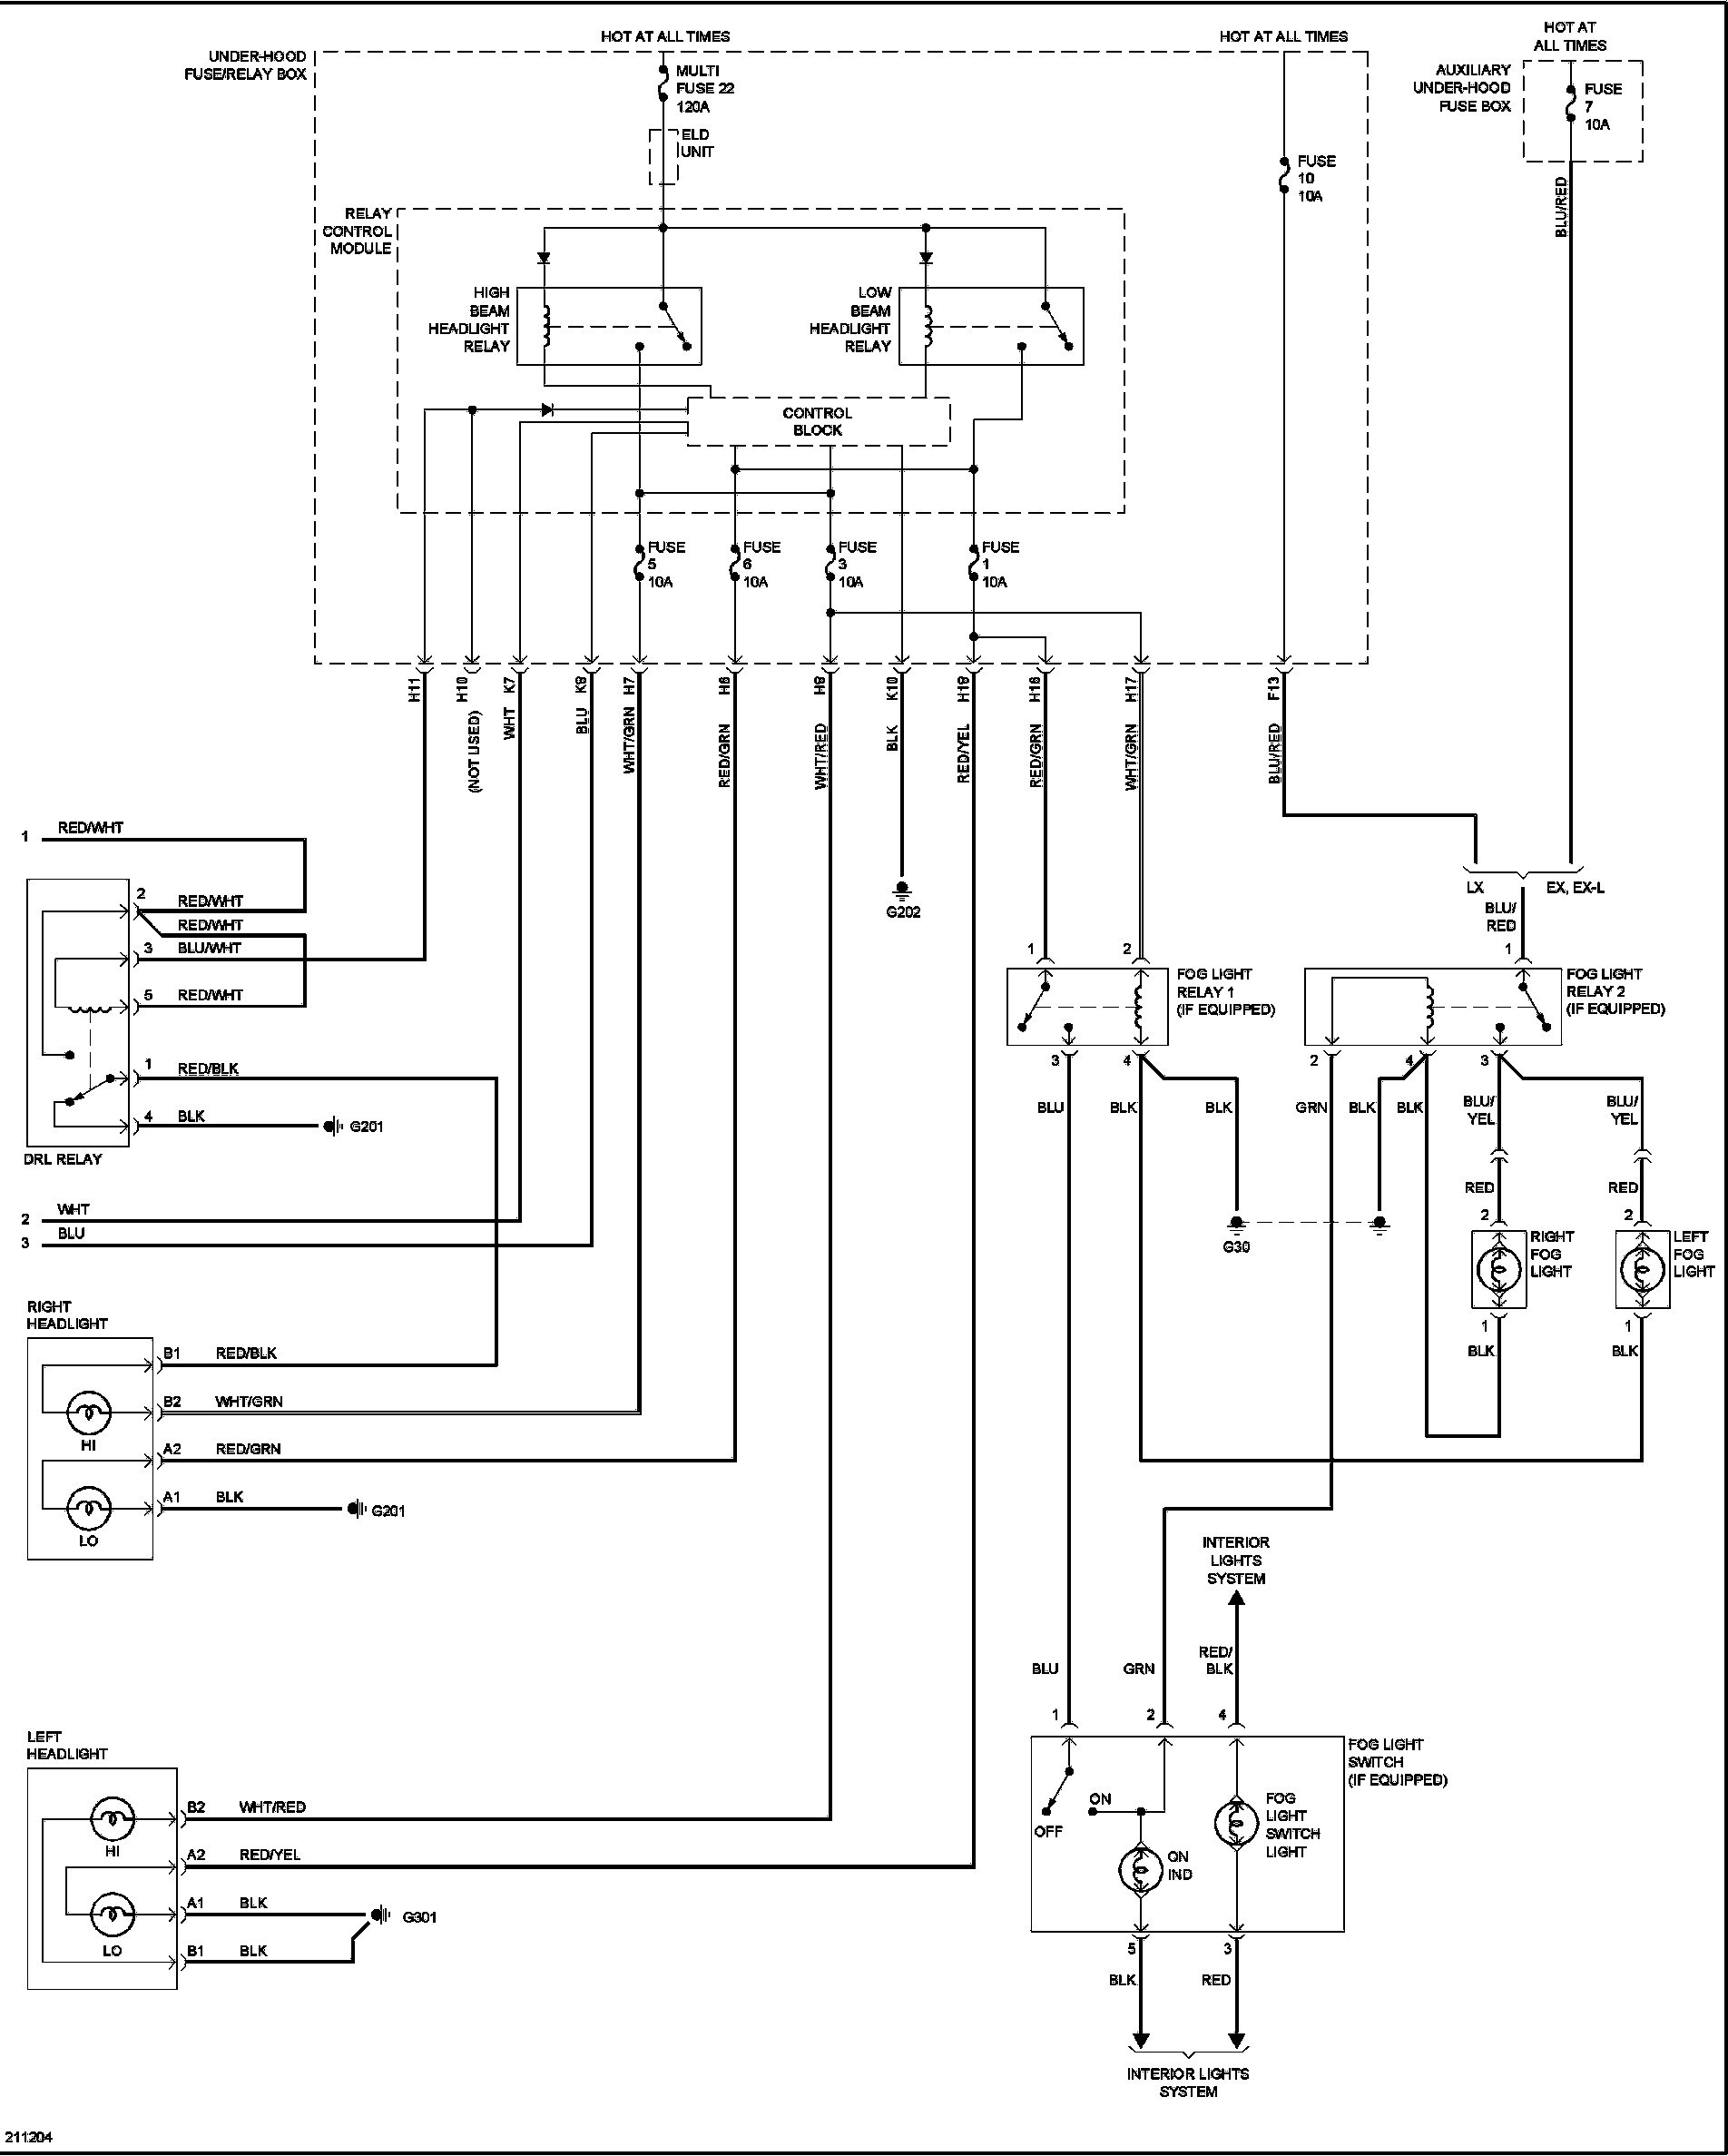 hight resolution of 2000 honda engine diagram wiring diagram mega honda engine wiring diagram gx270 2000 civic engine diagram